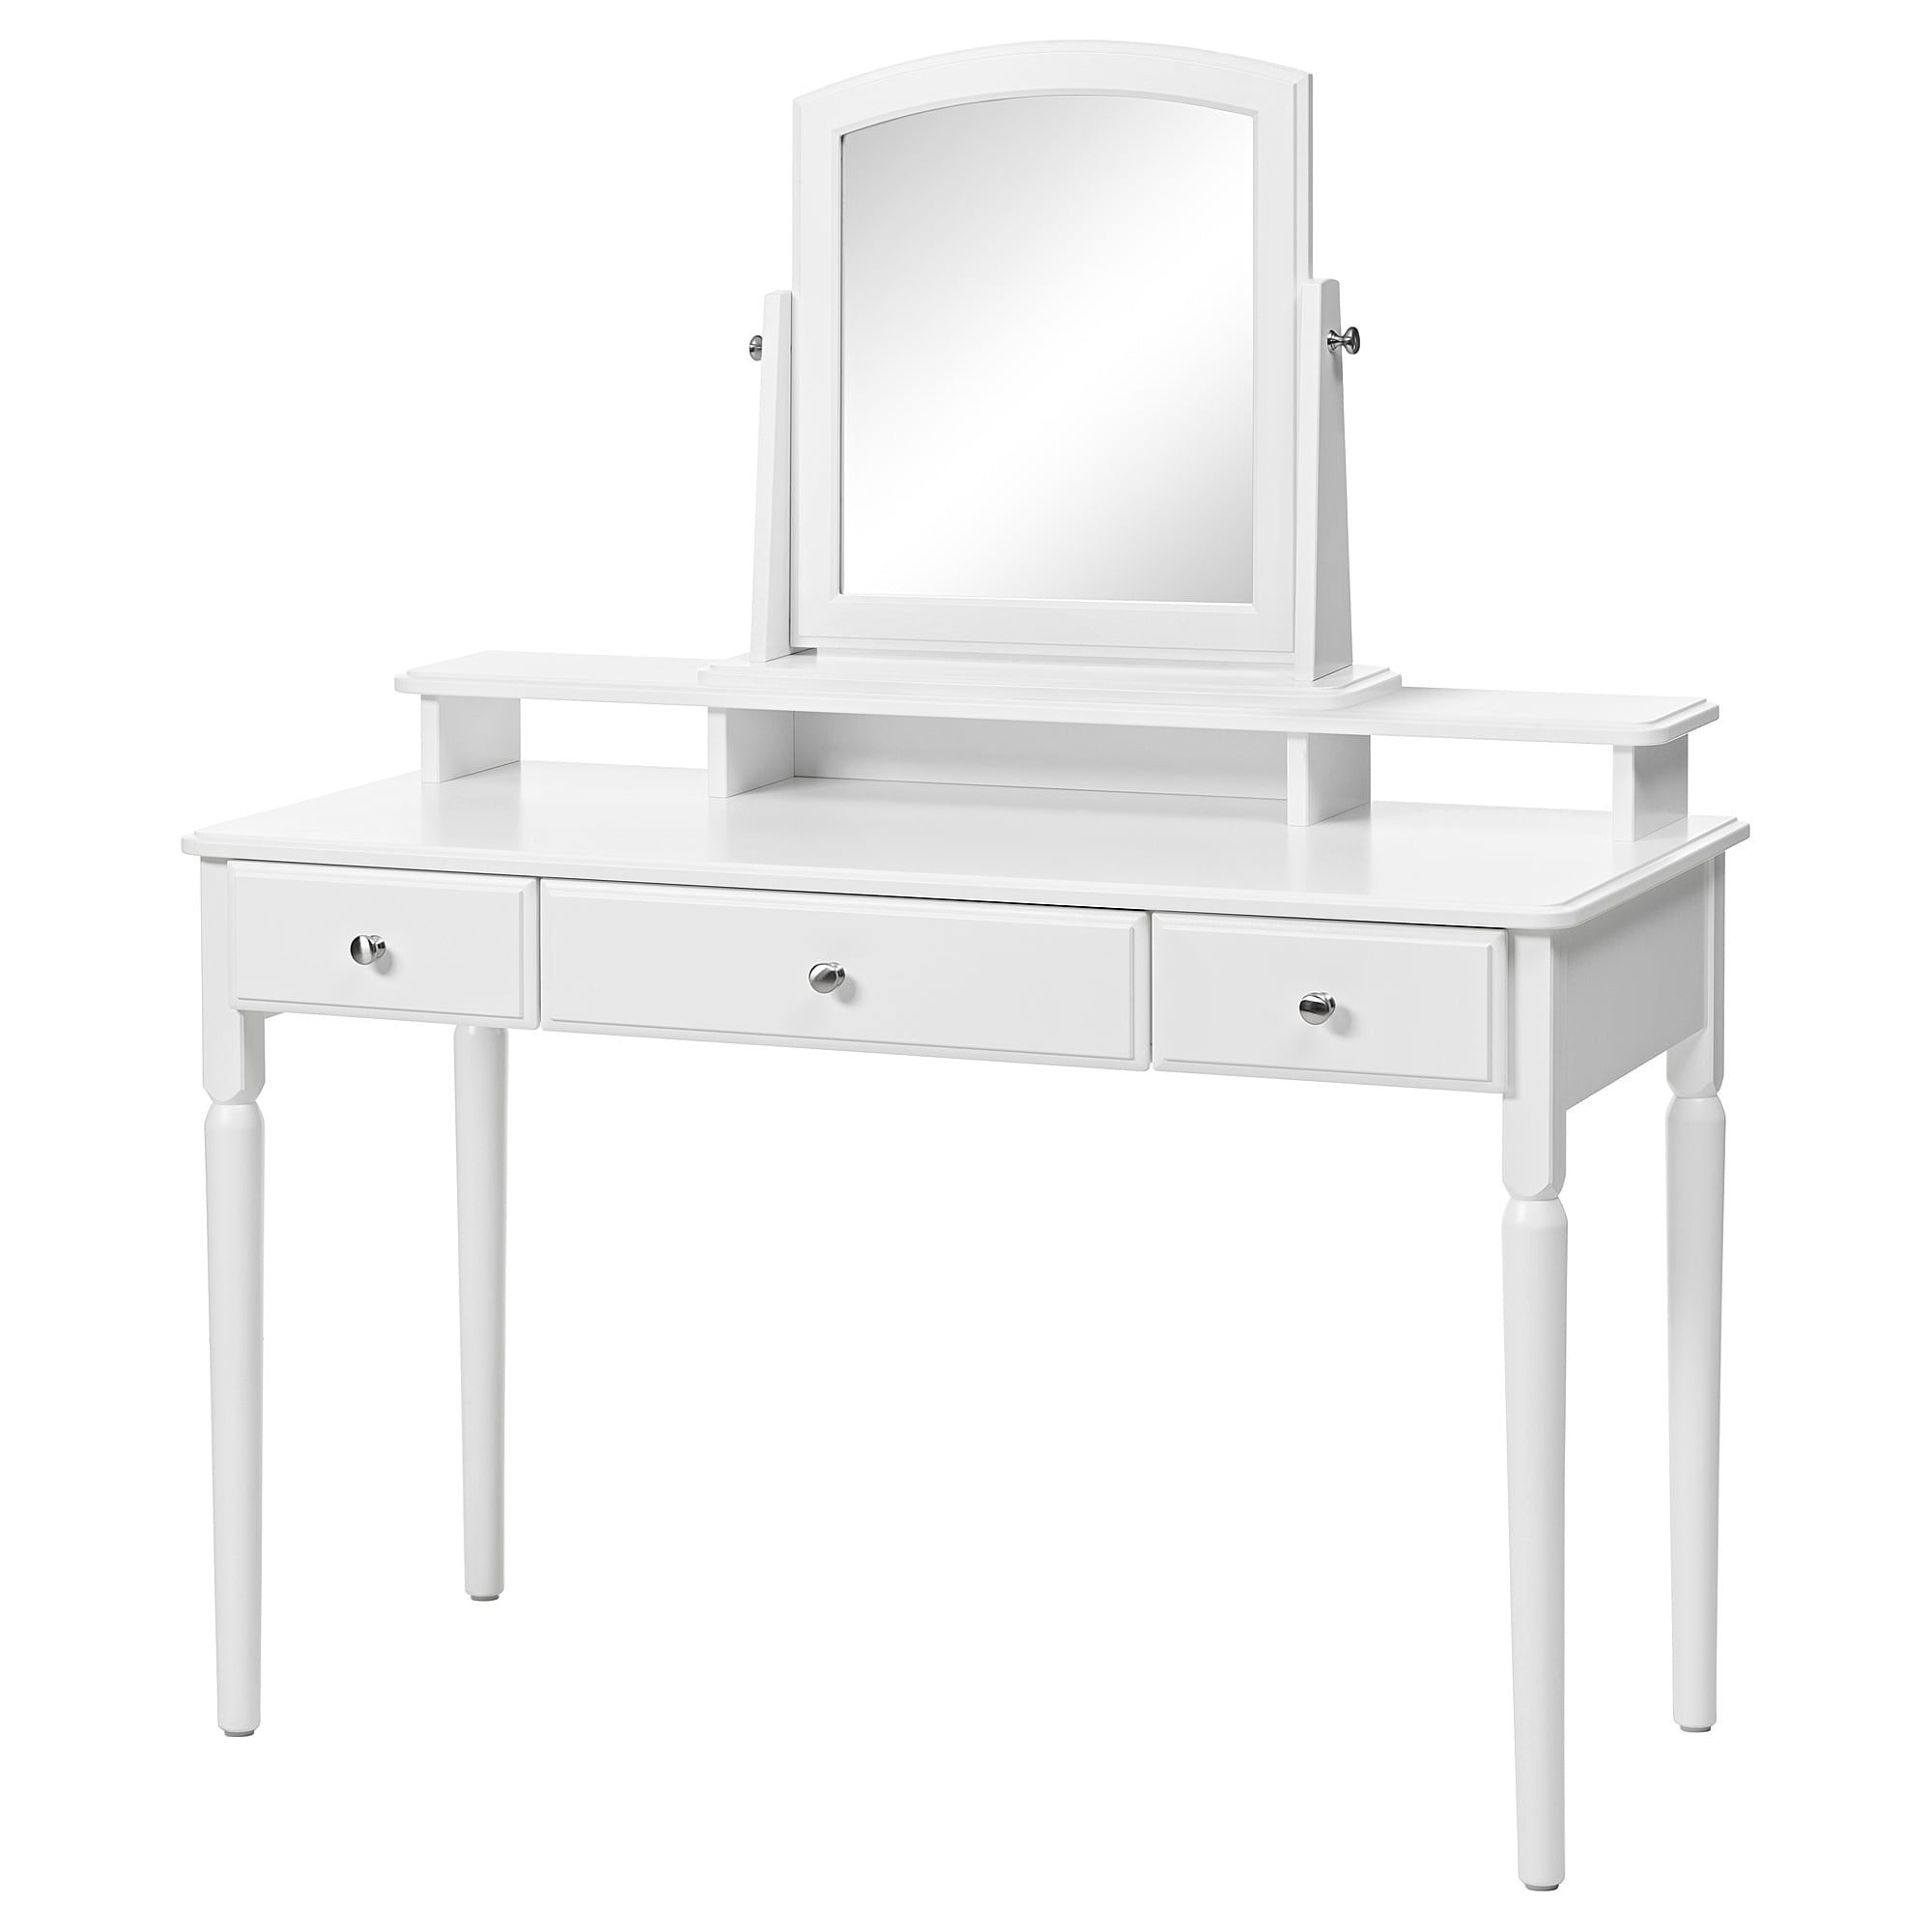 Tyssedal dressing table with mirror white in costal chic